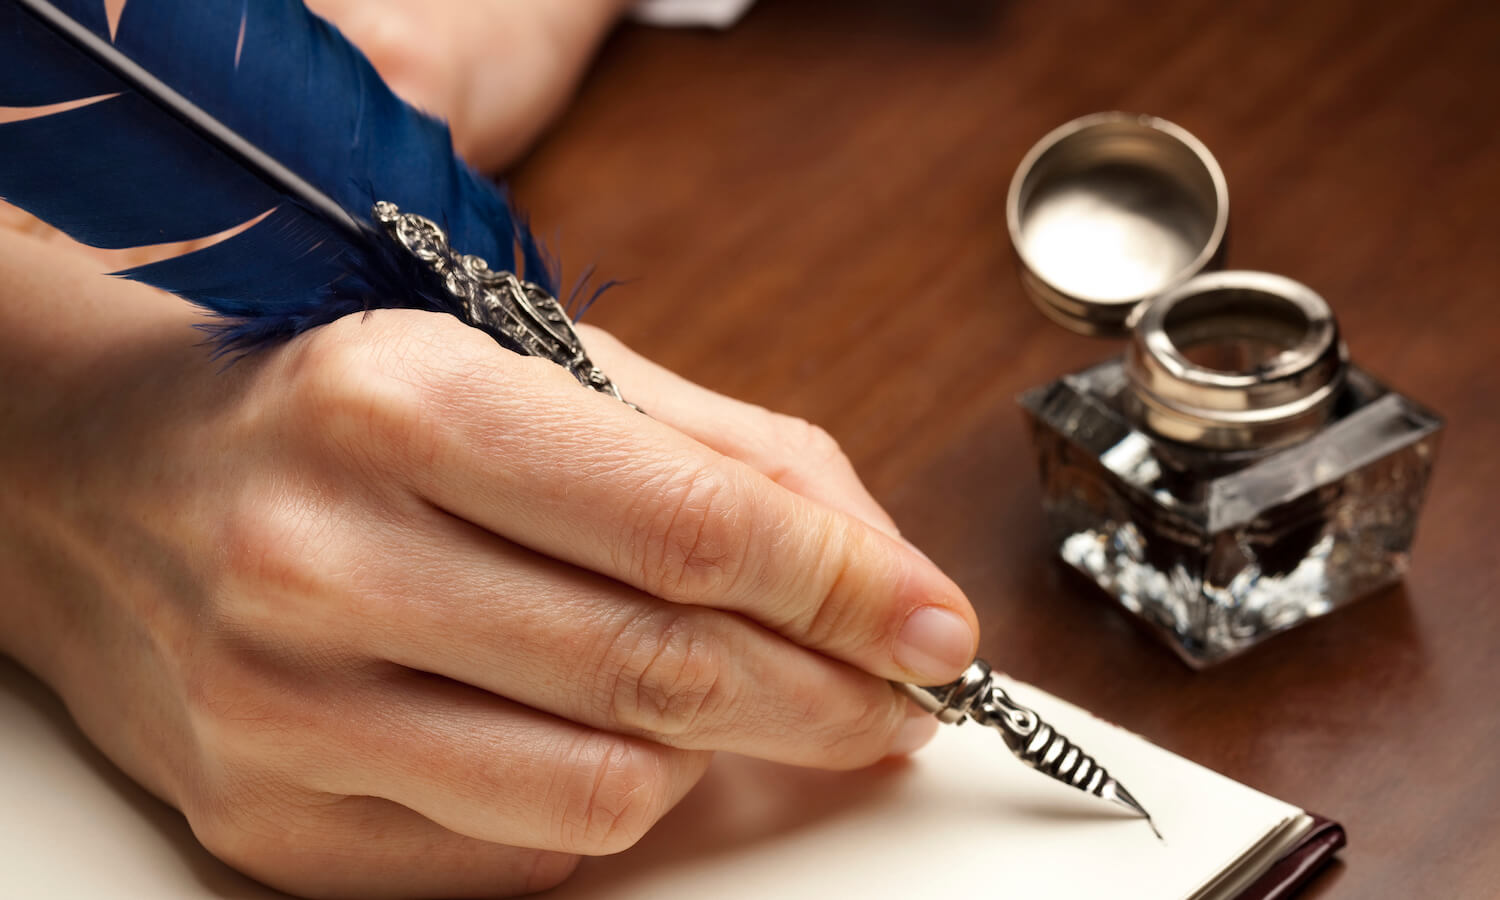 Close-up of woman's hand writing with quill pen on a blank page of a diary; inkwell nearby on the table